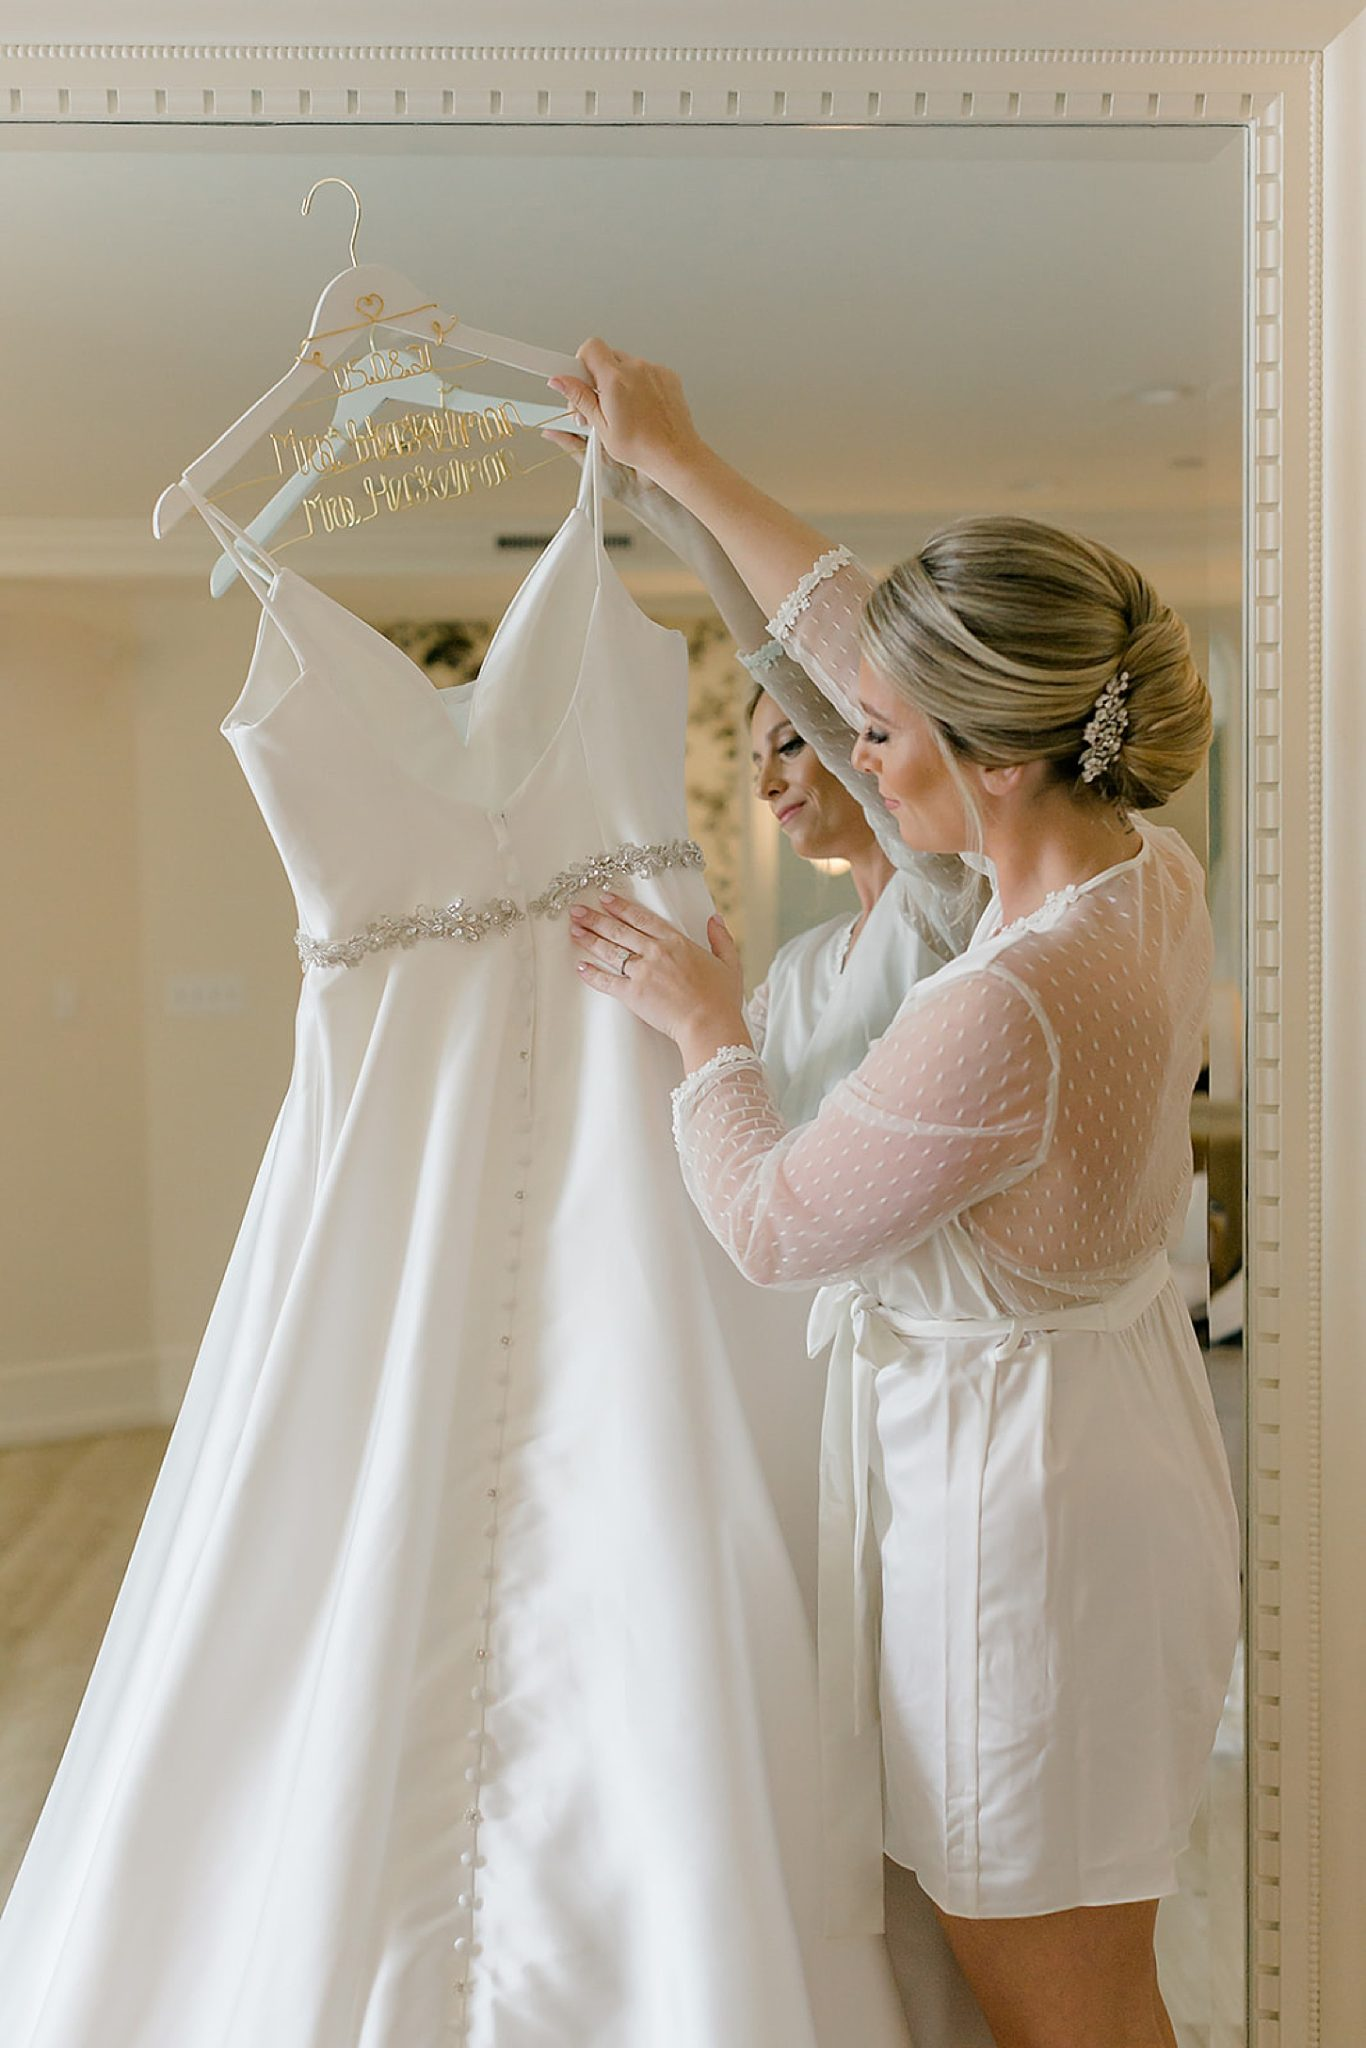 Linwood Country Club Summer Wedding Photography Studio by Magdalena Studios Jenn Kyle 0011 scaled